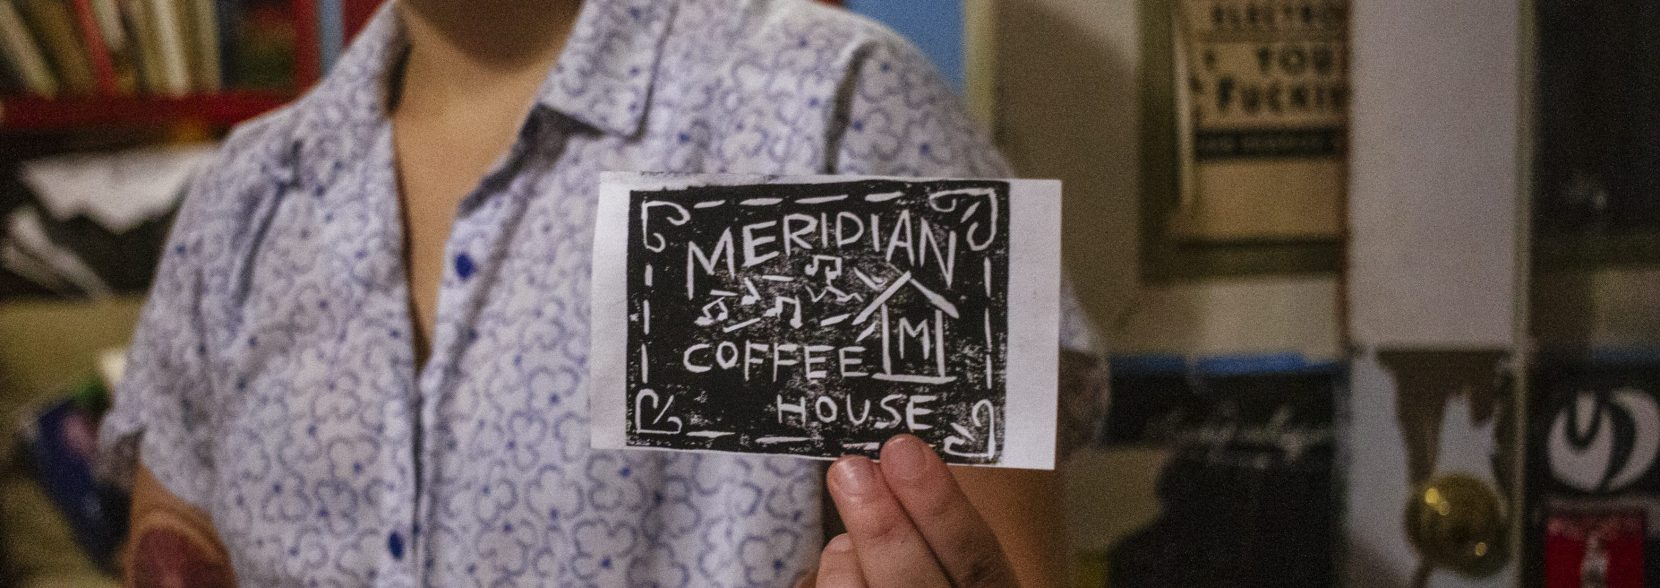 Interview: Meridian Coffeehouse